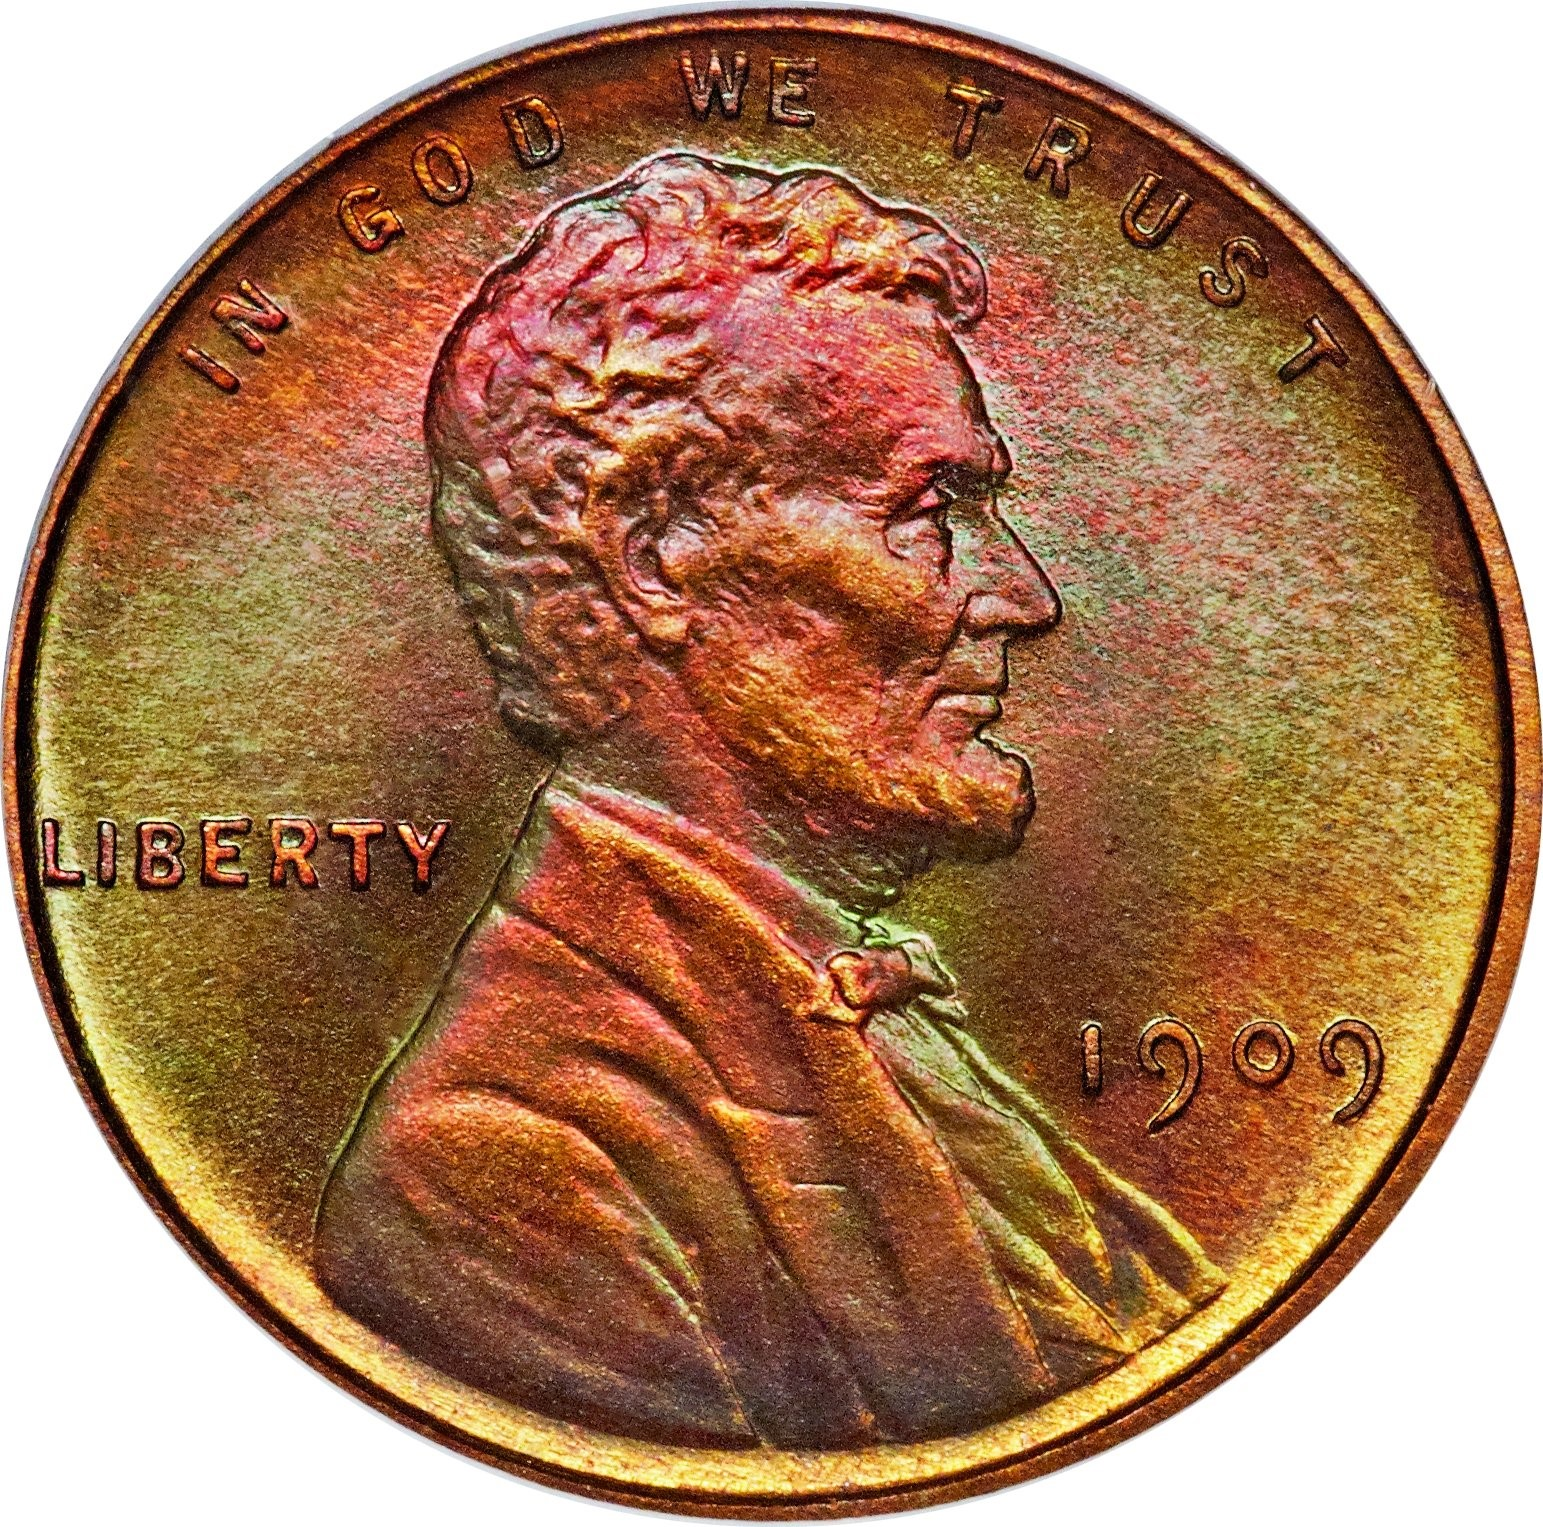 This Proof 1909 Lincoln, V.D.B. cent sold for a breathtaking $258,500 at Heritage Auctions' ANA U.S. Coins Signature Auction in early August 2014. The coin is a Proof 67+ red and brown PCGS Secure coin with a gold CAC label.